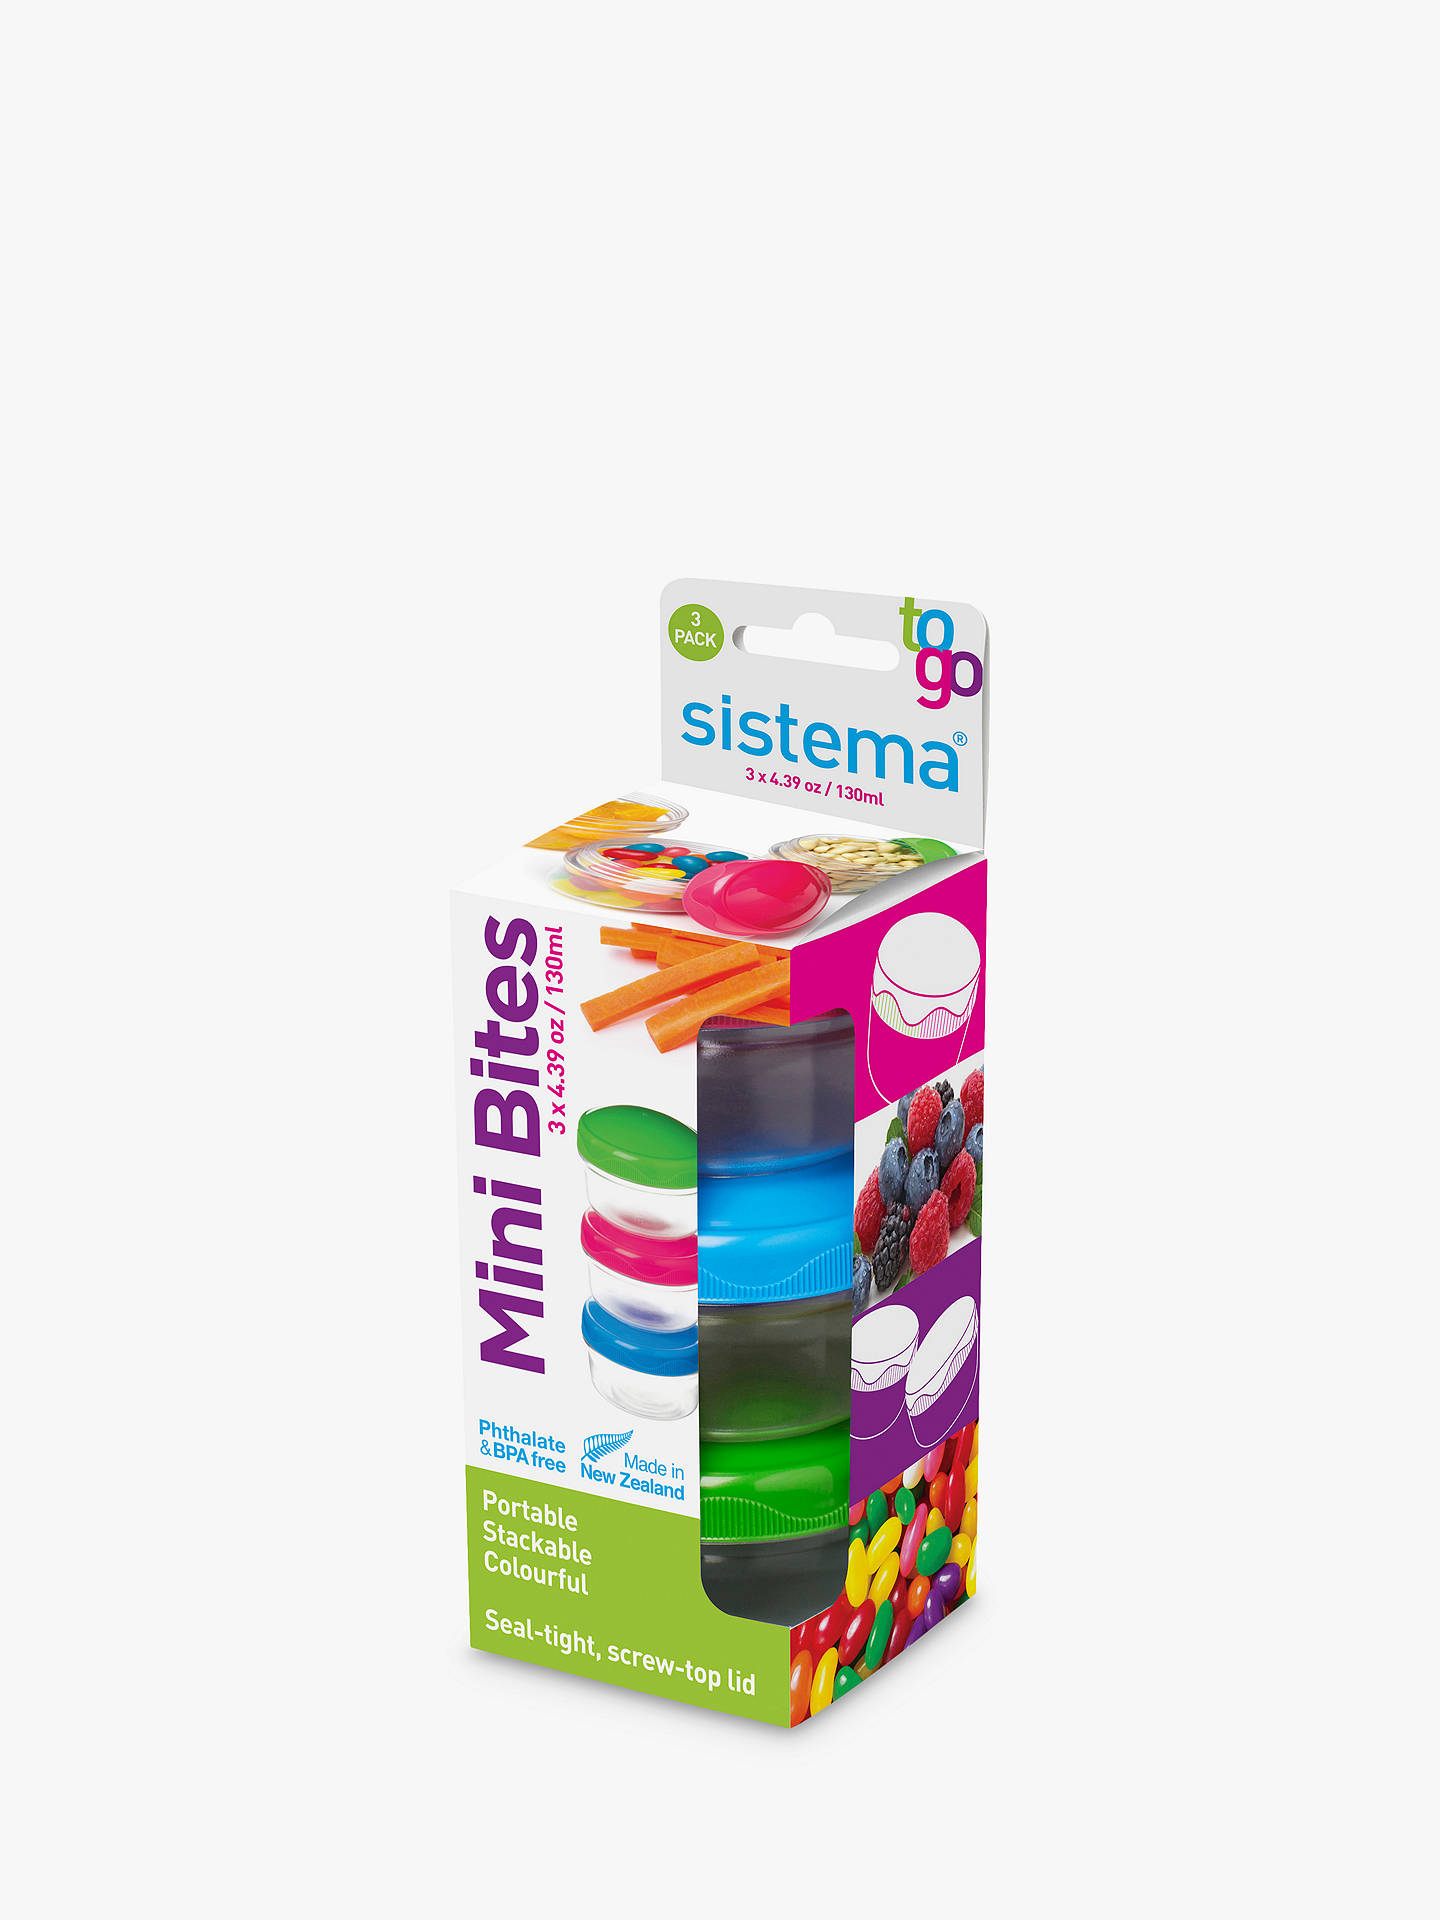 Buy Sistema Mini Bites To Go Snack Box, 130ml, Set of 3, Assorted Online at johnlewis.com